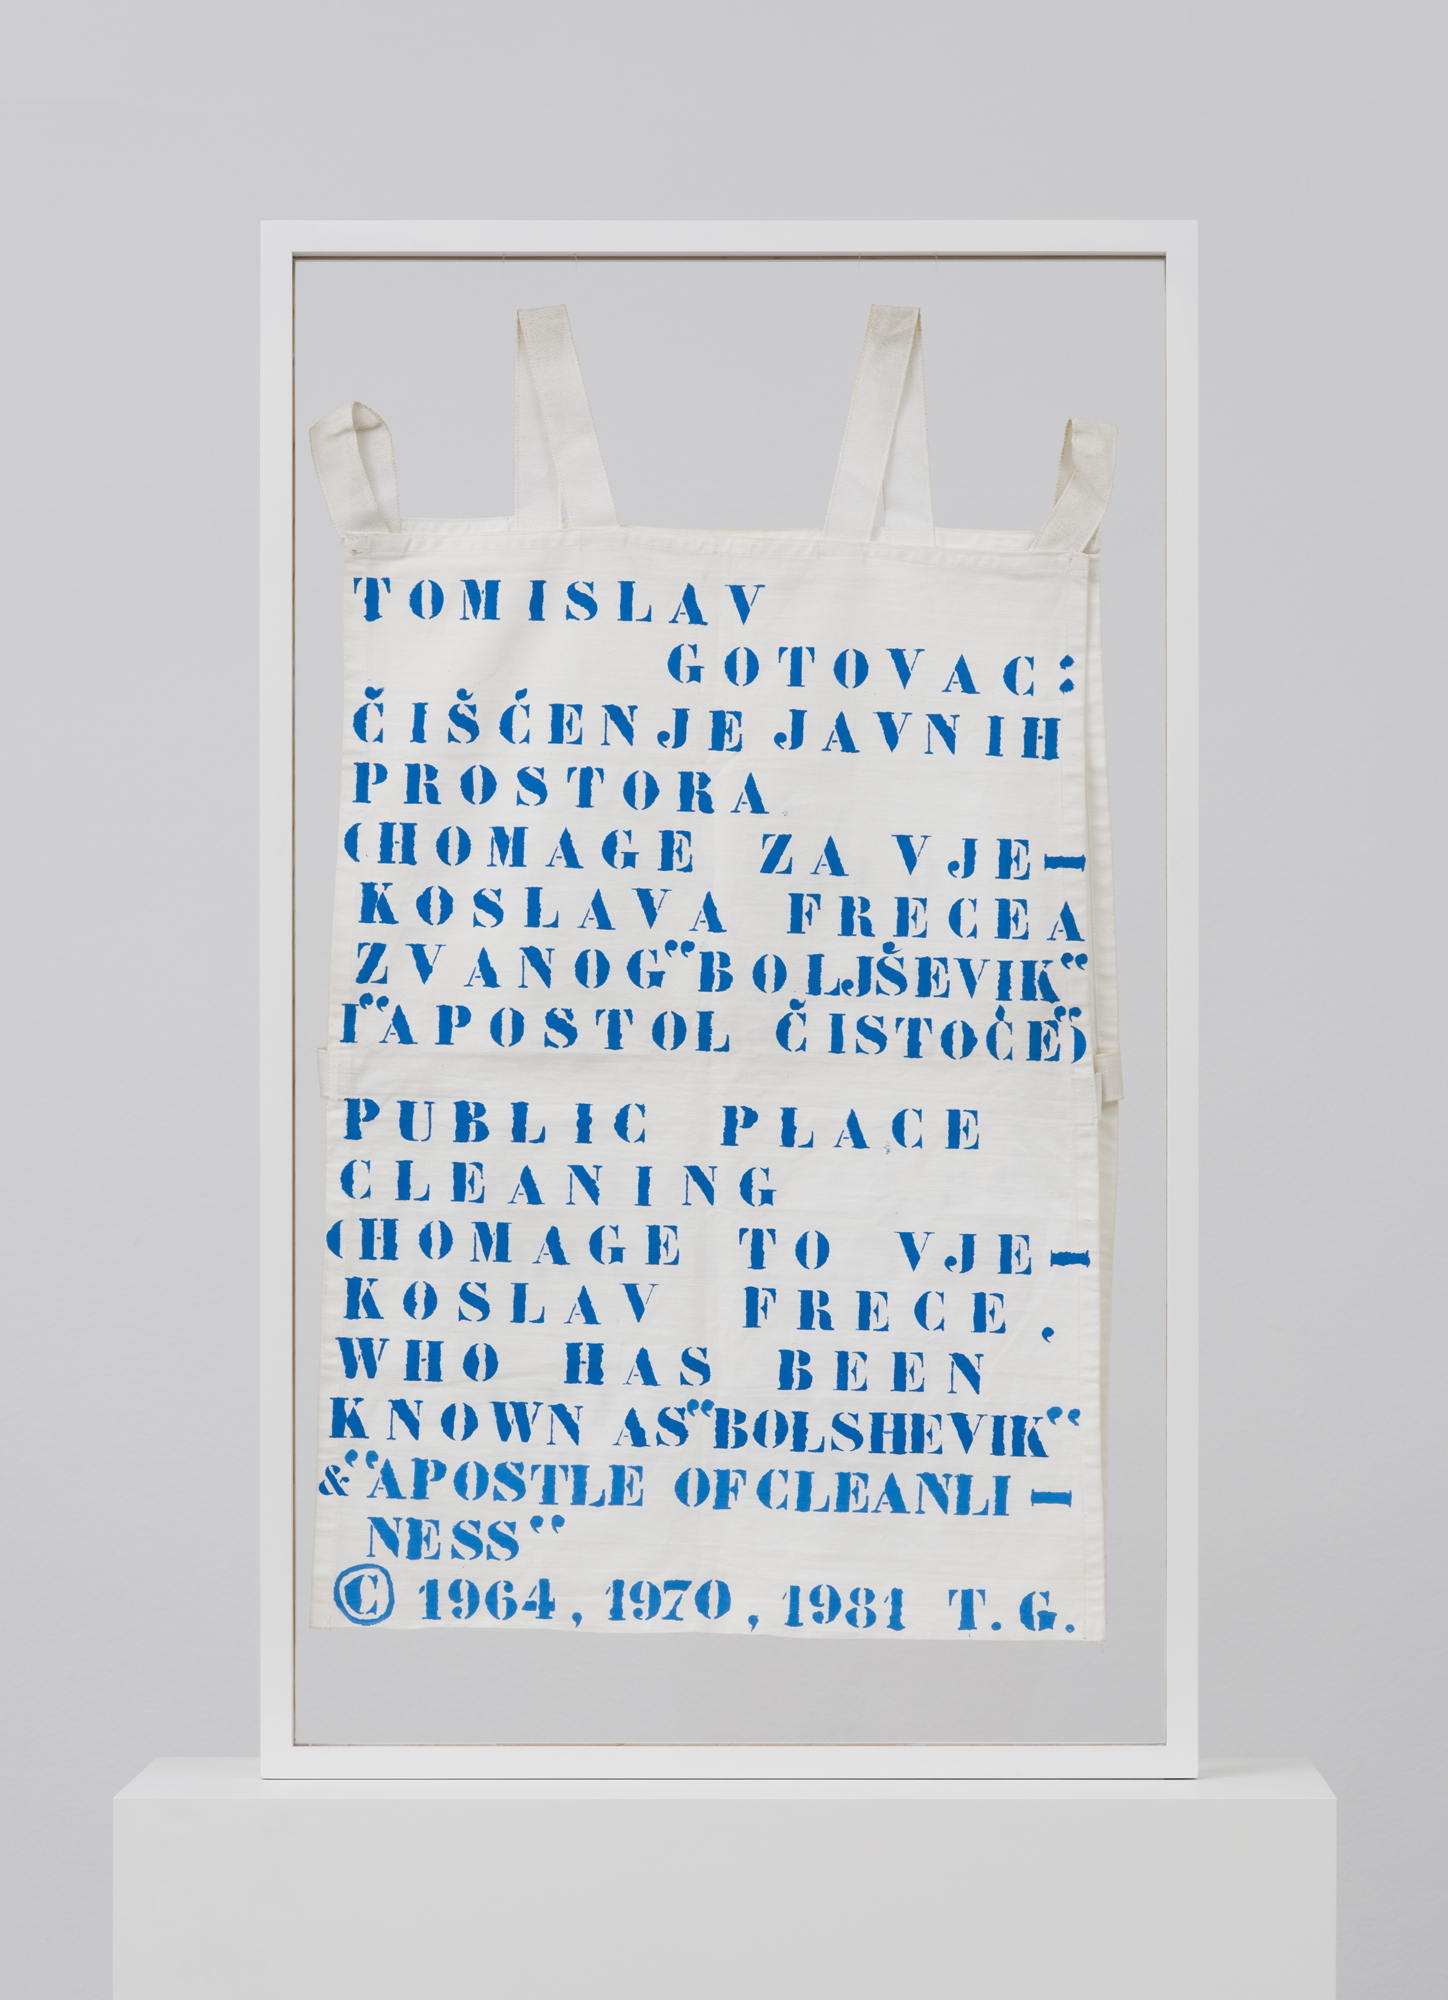 Cleaning of Public Spaces, artefact from the performance, hand-made apron, 1981